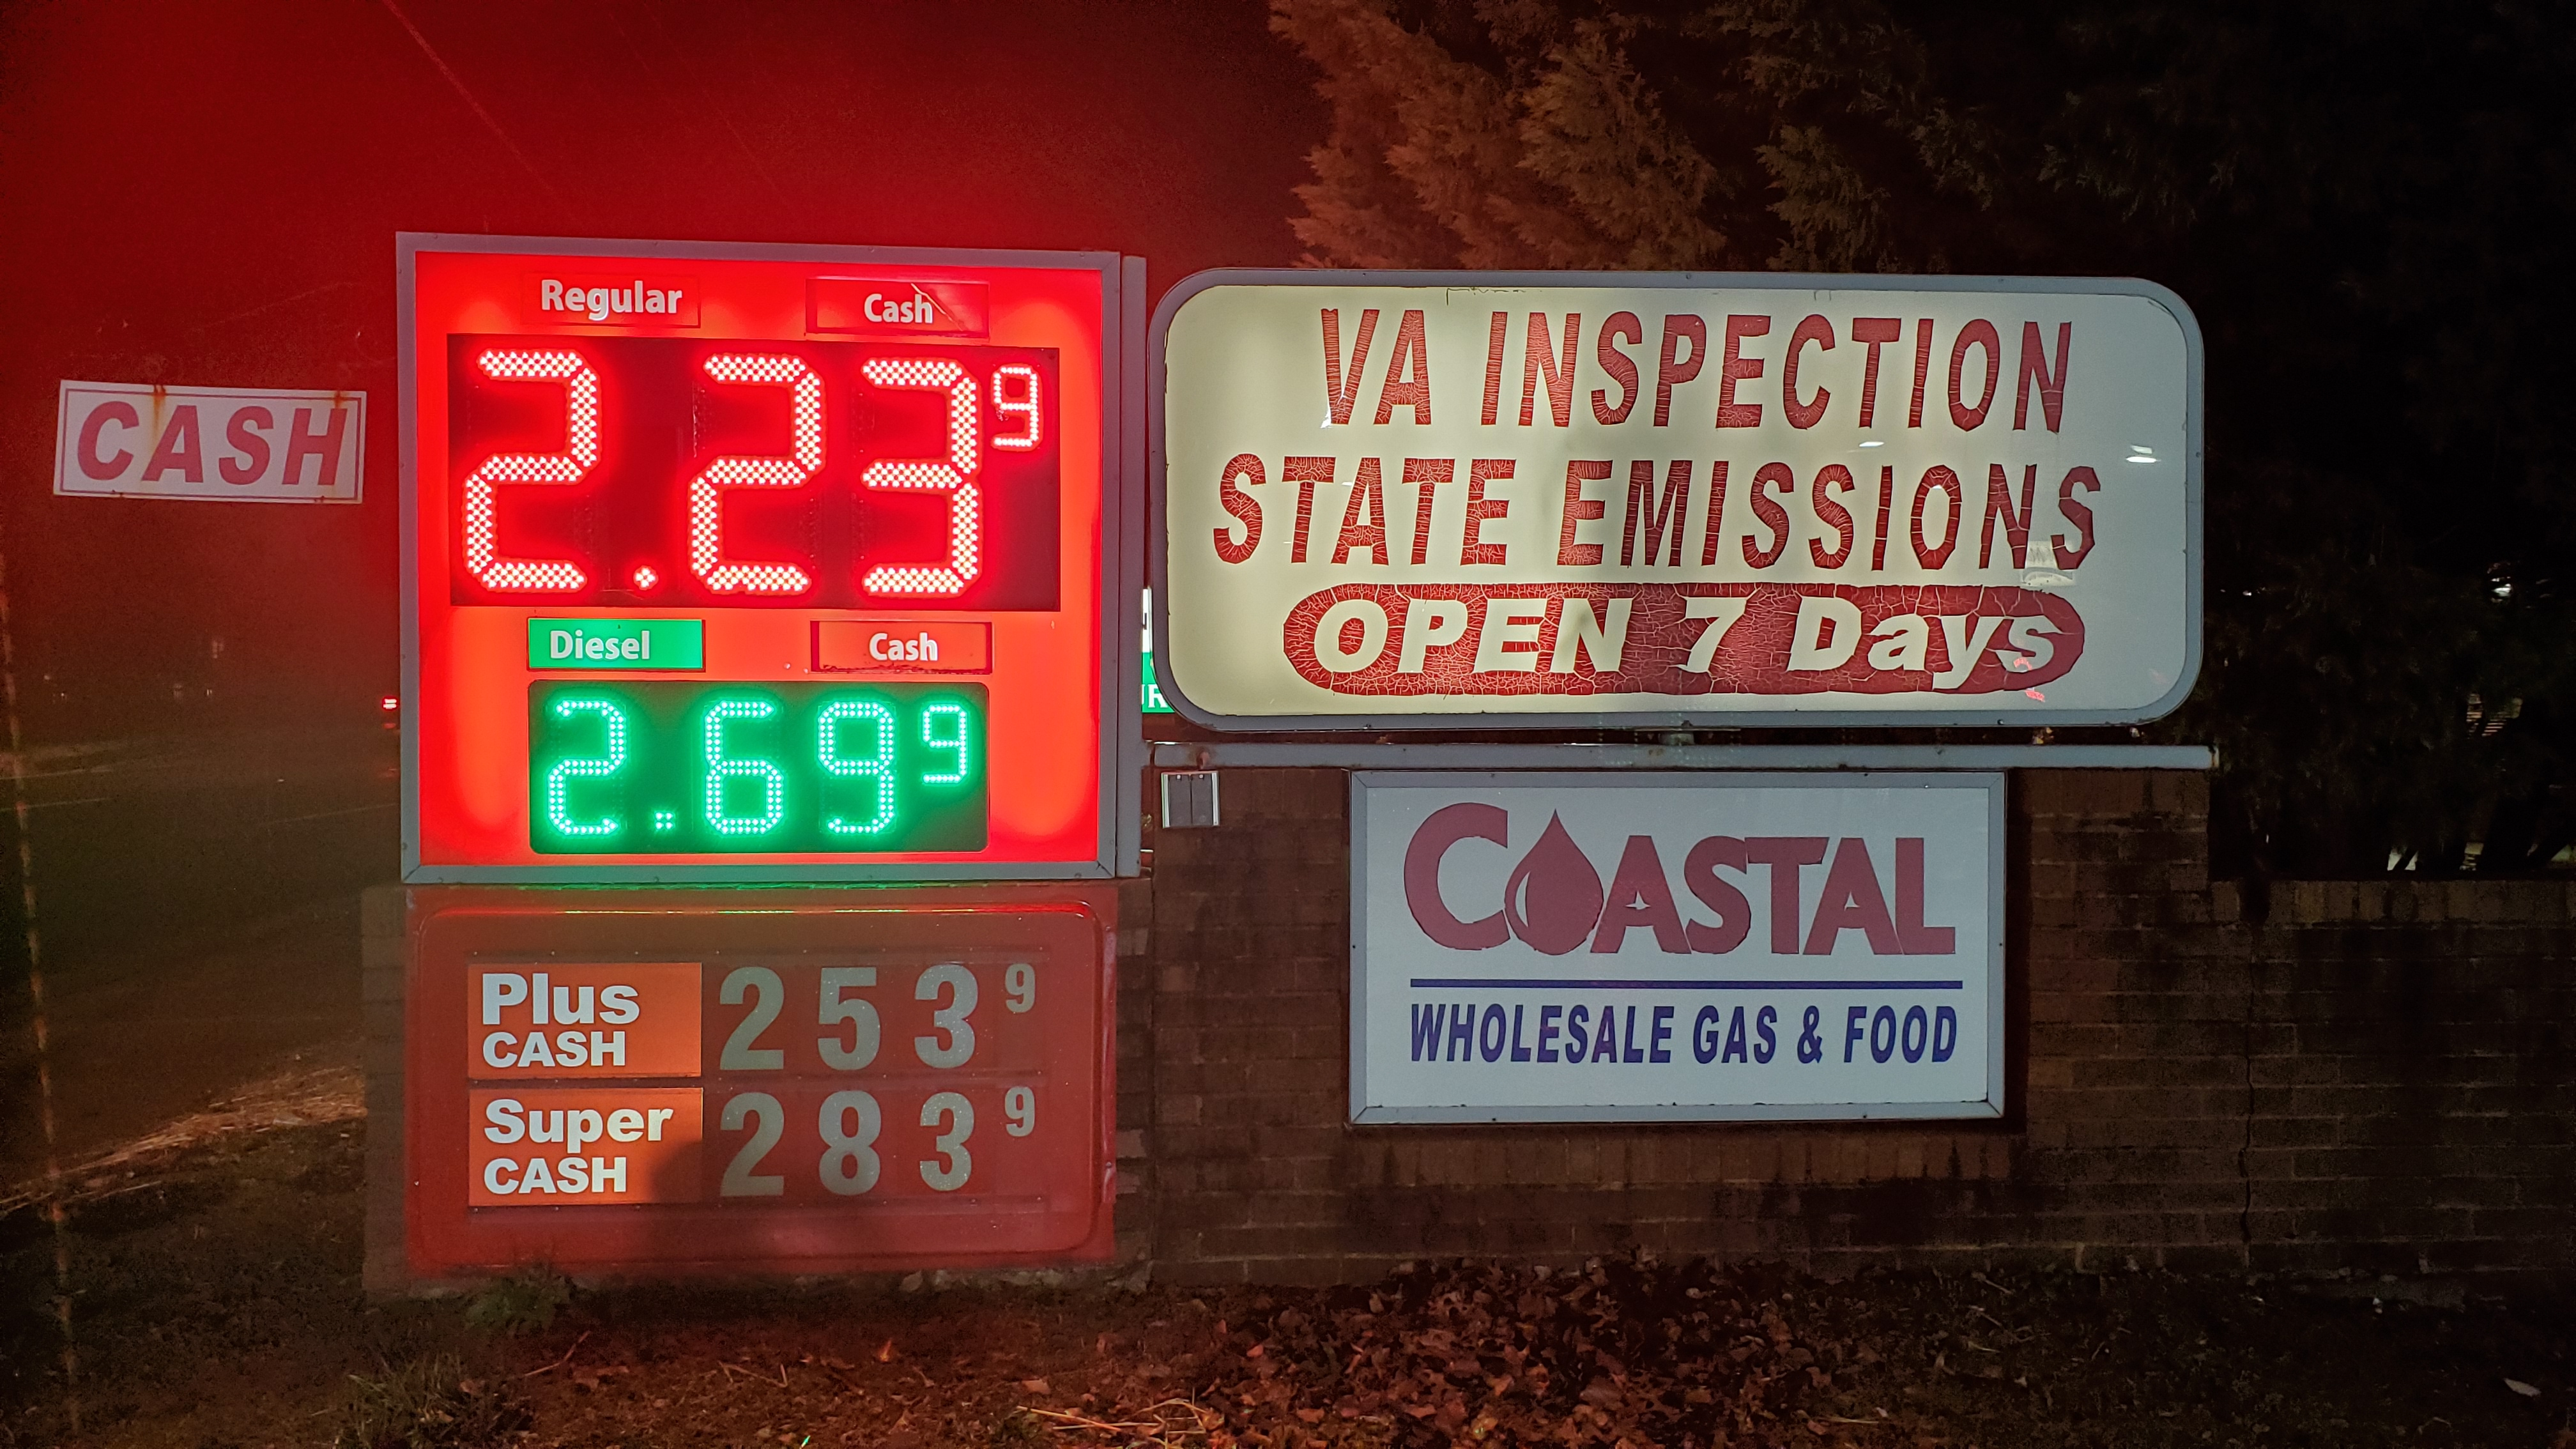 Coastal Gas Sign